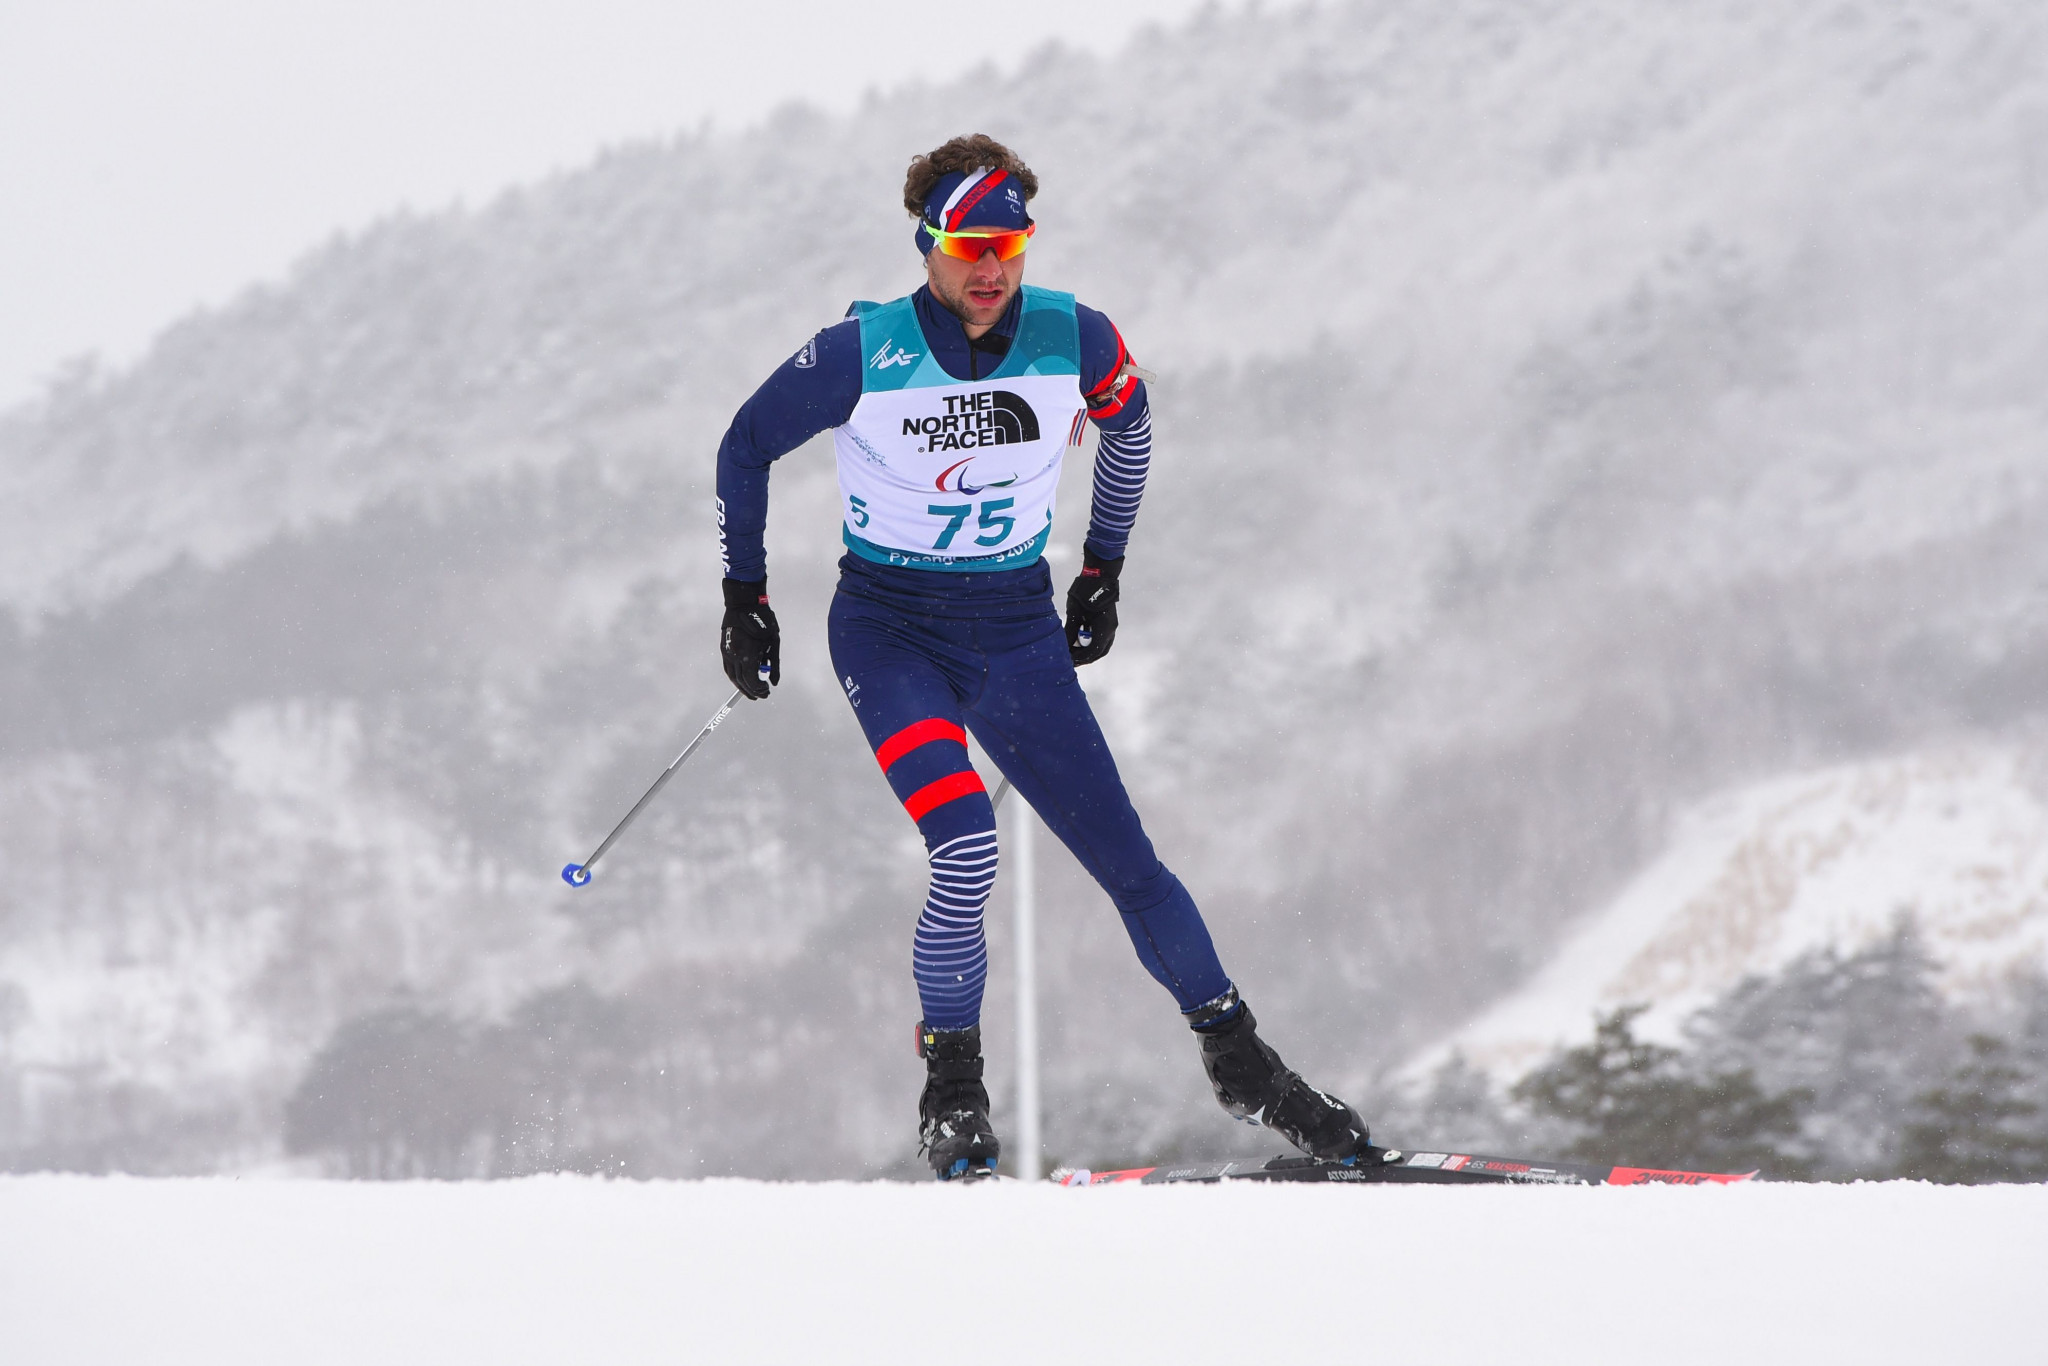 Paralympic champion Daviet clinches third gold of World Para Nordic Skiing World Cup